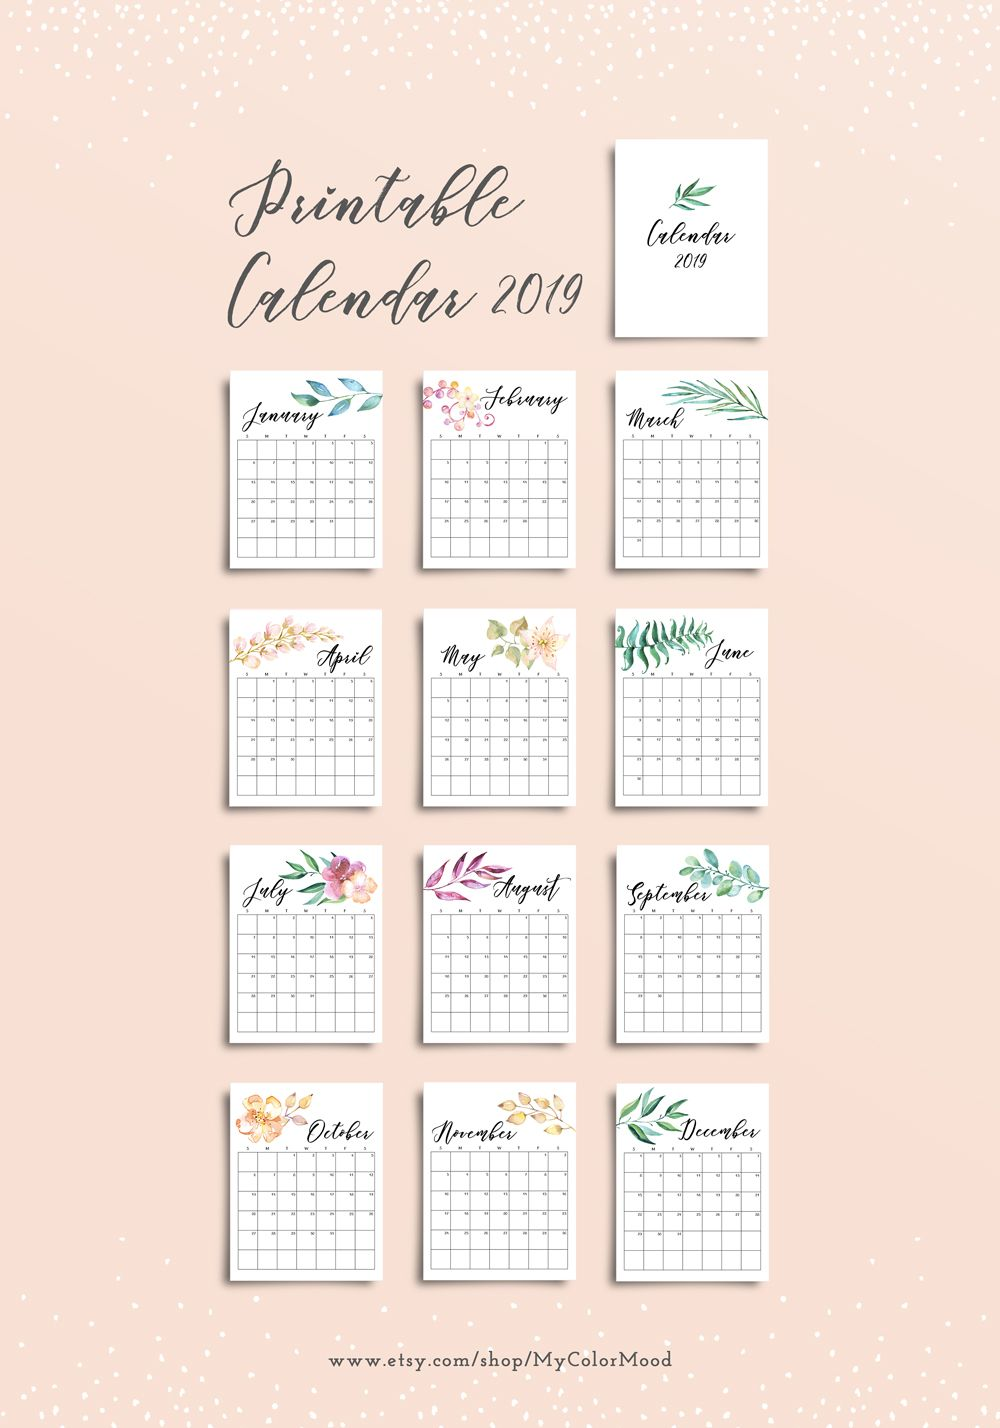 Wedding decorations at home january 2019  desk calendar printable calendar pages Printable monthly